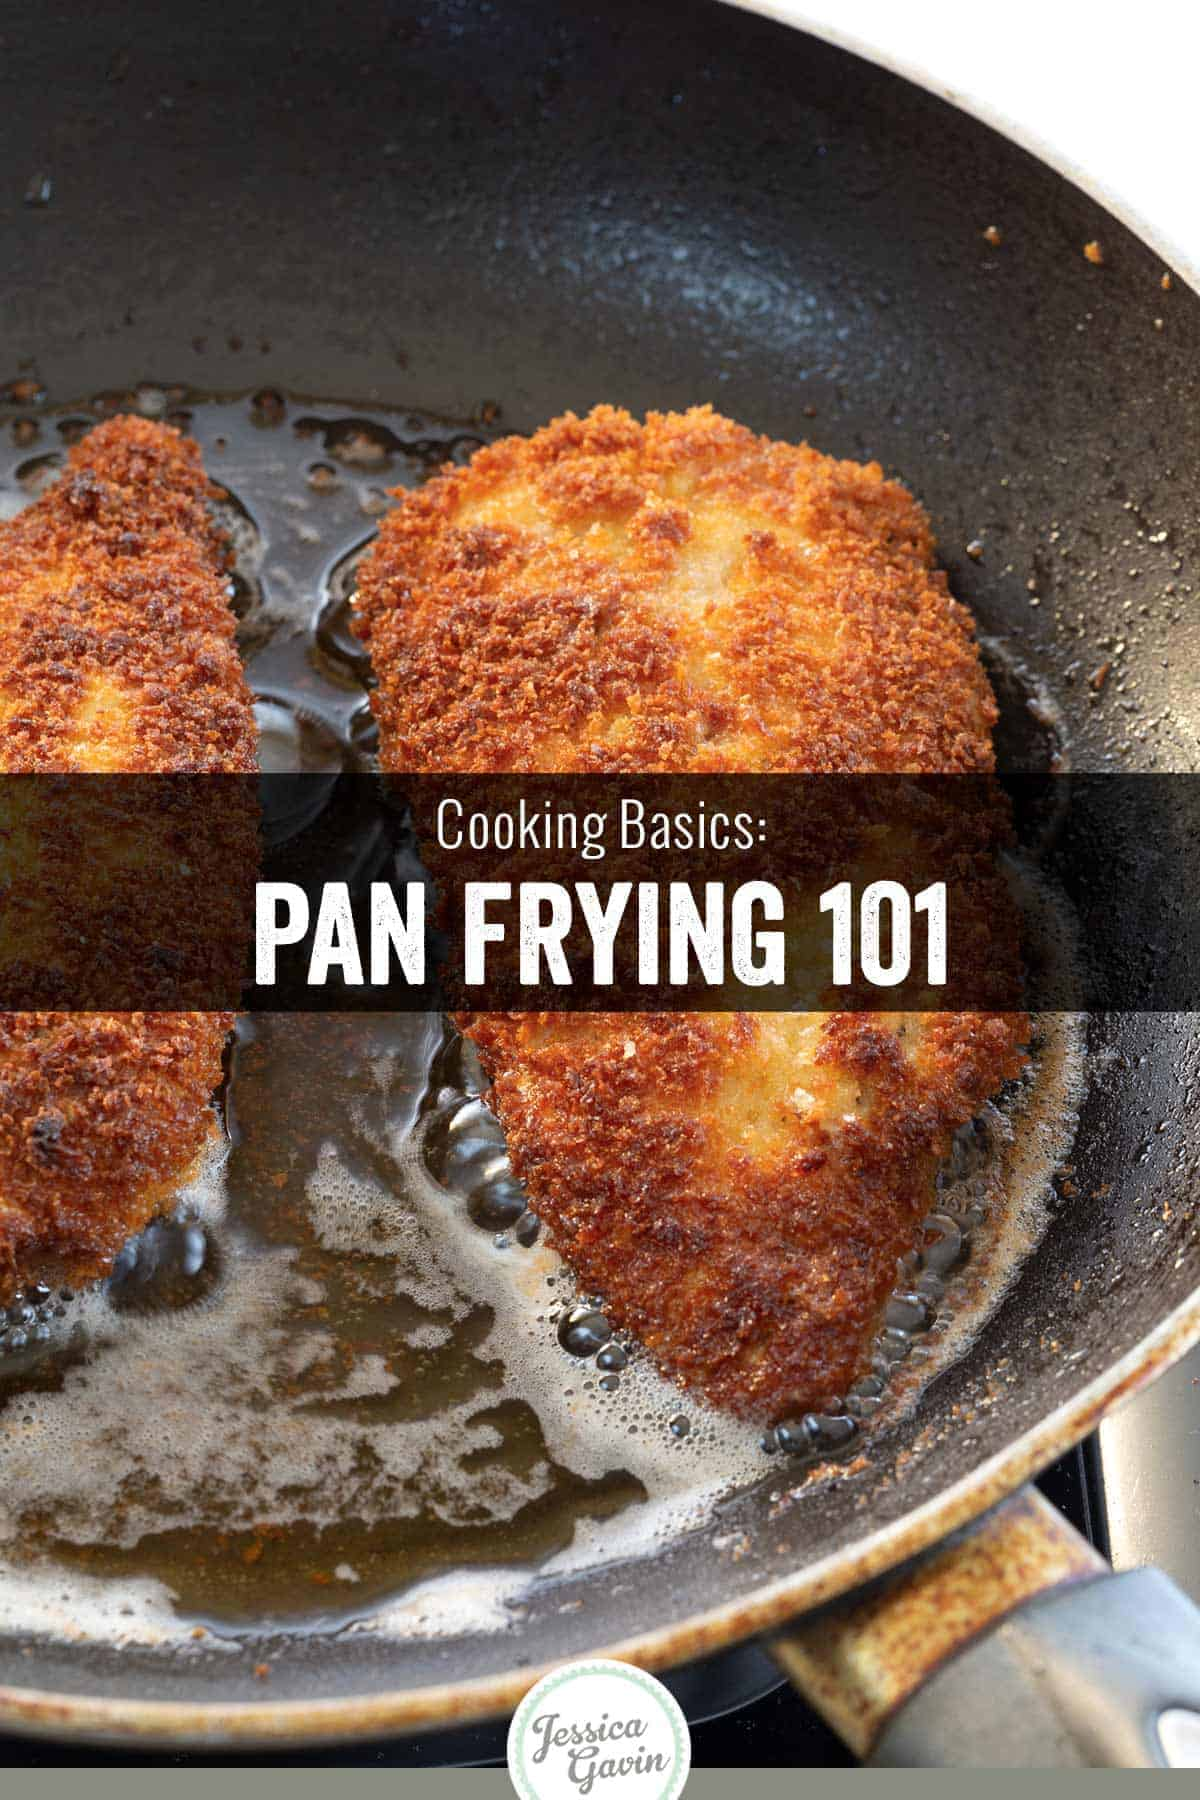 Pan-frying is an effective way to add rich, caramelized flavor to the food you cook, as well as retain its moisture and tenderness. #frying #culinaryschool #cooking101 #foodscience